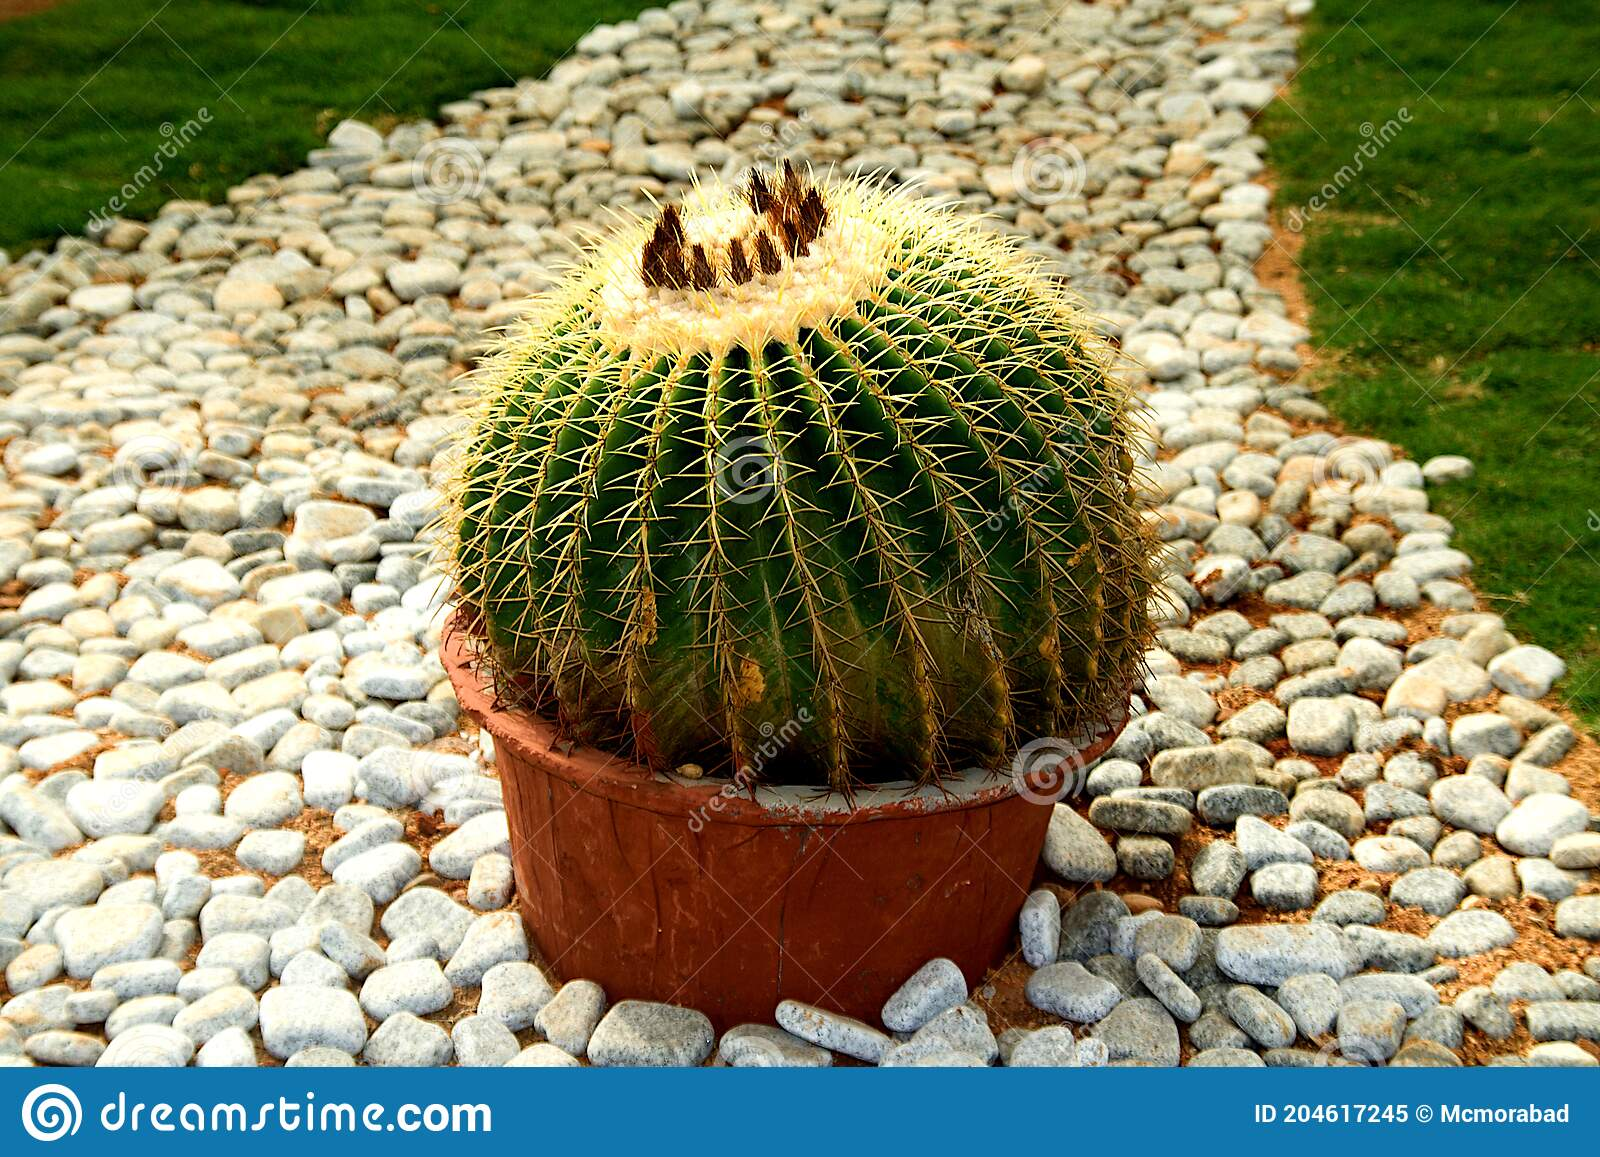 Cactus Plant In Earthen Pot Stock Image Image Of White Pebbles 204617245